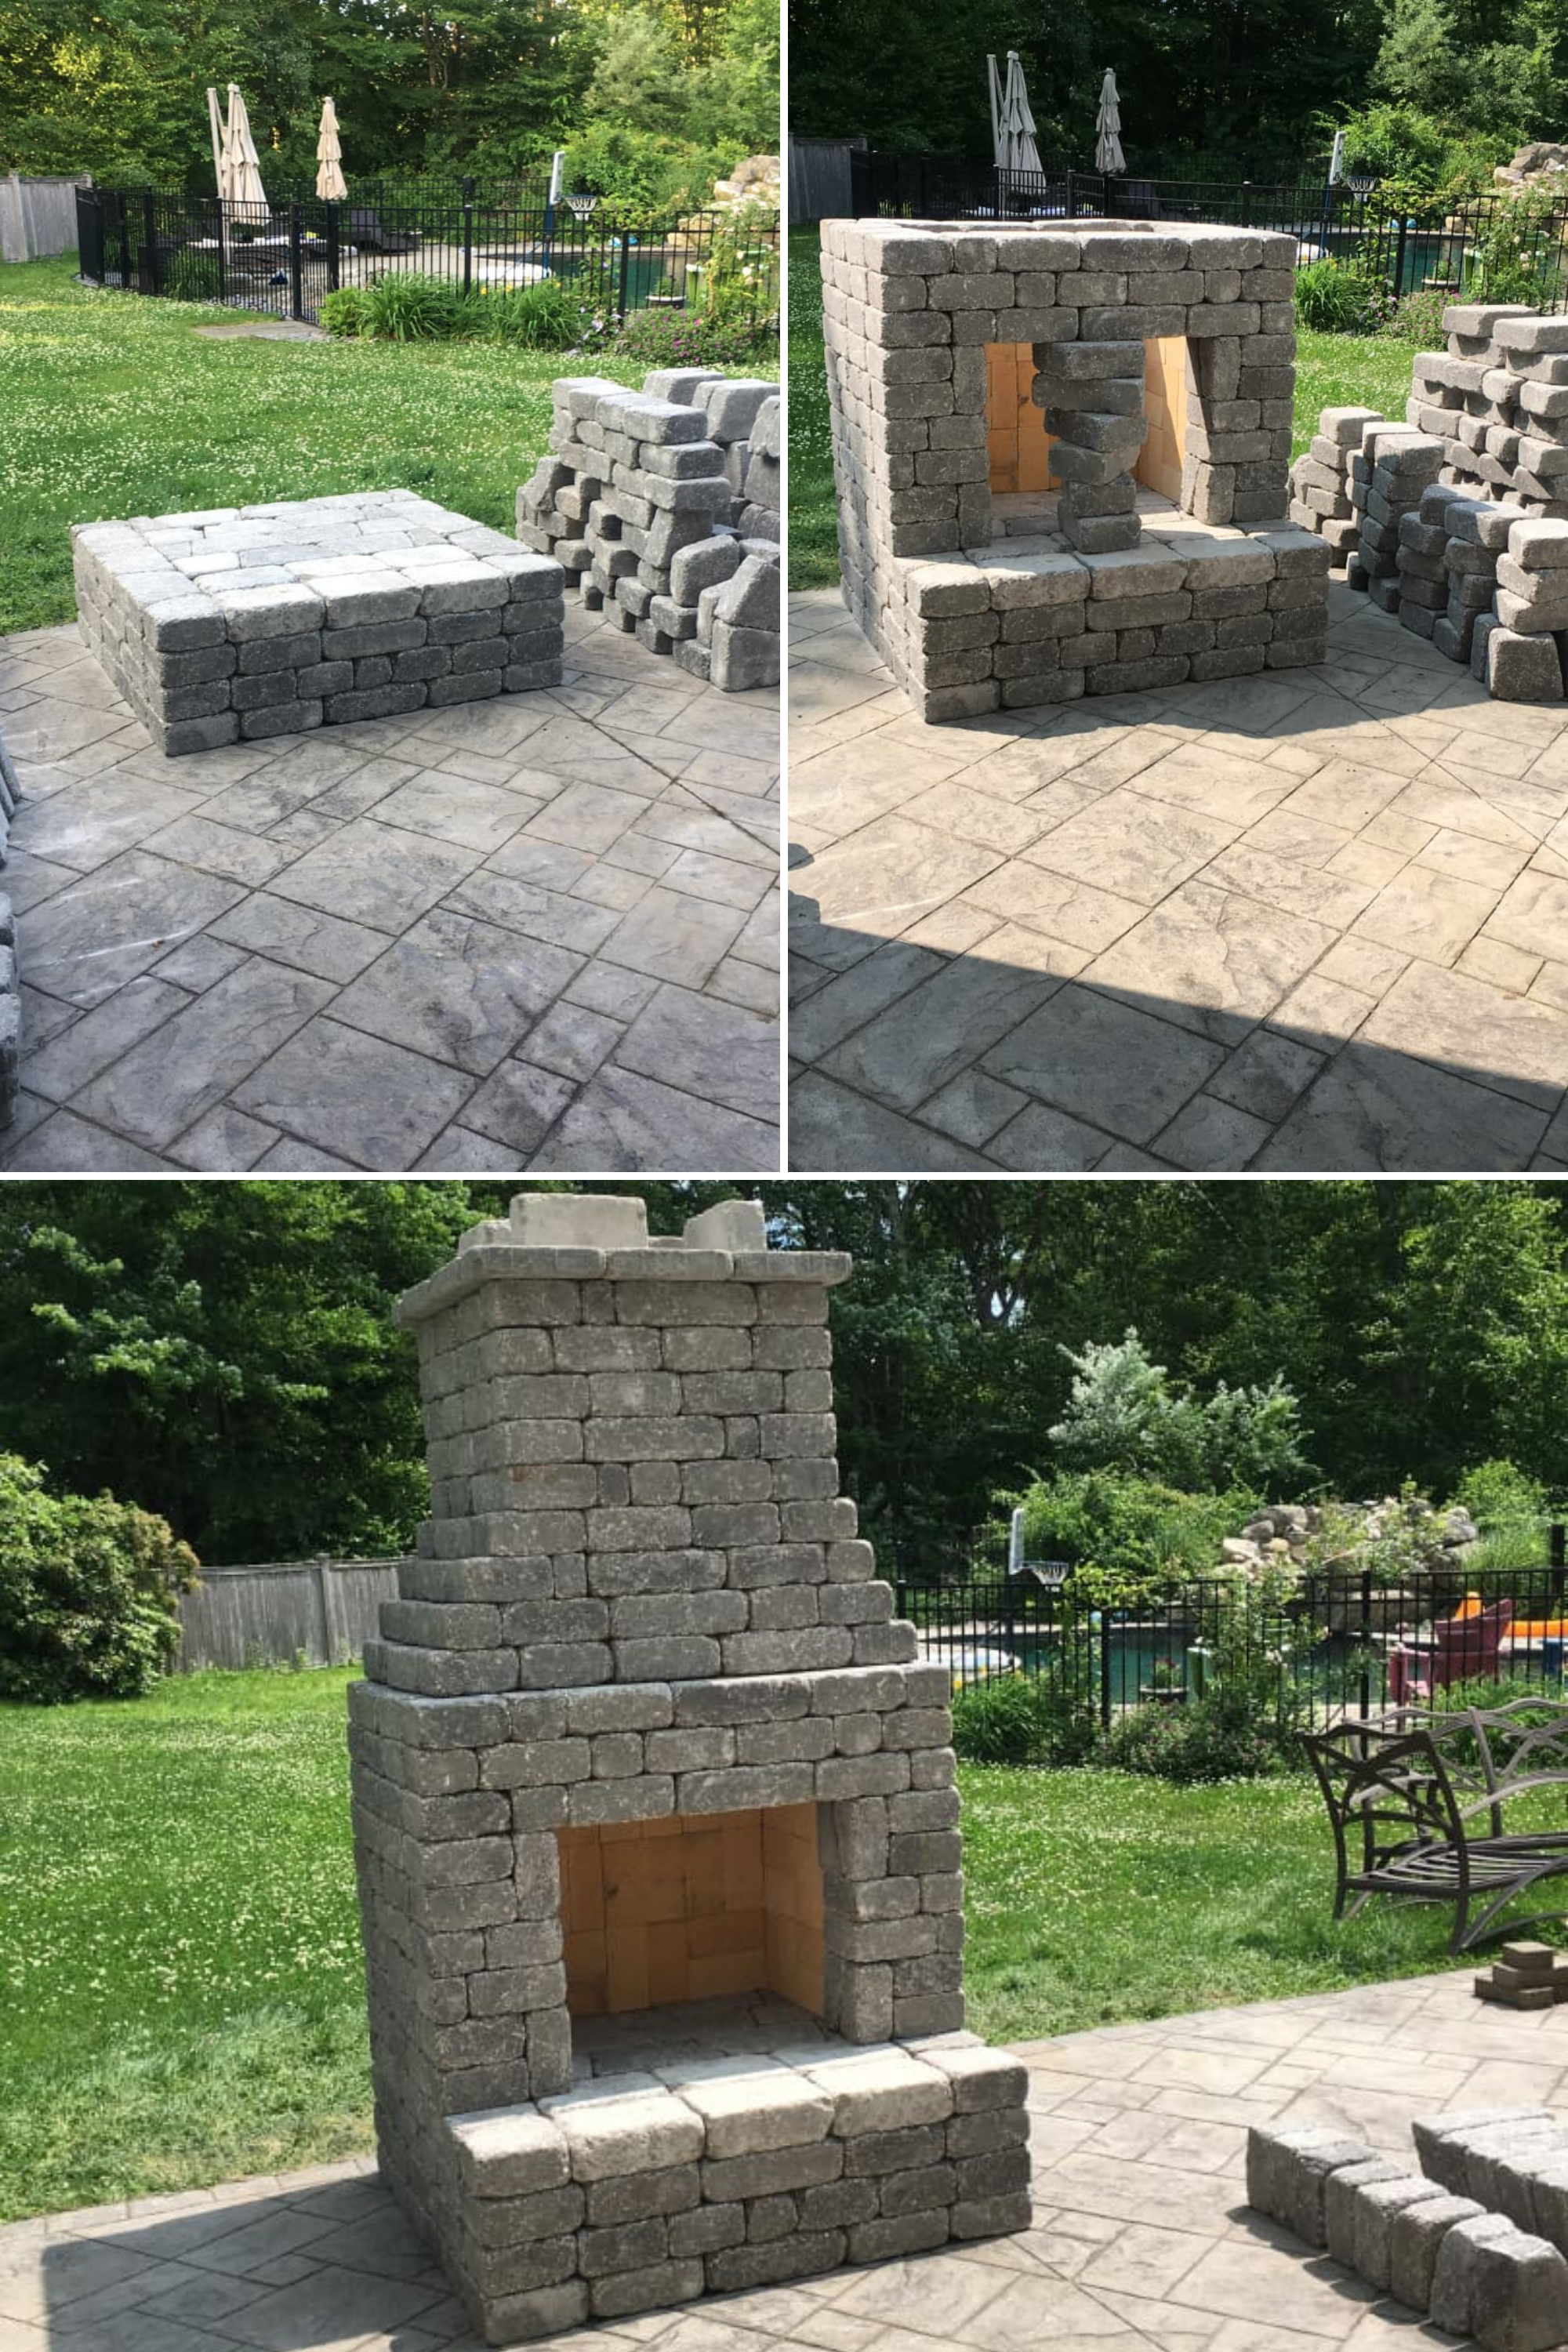 People Love Building This Outdoor Fireplace